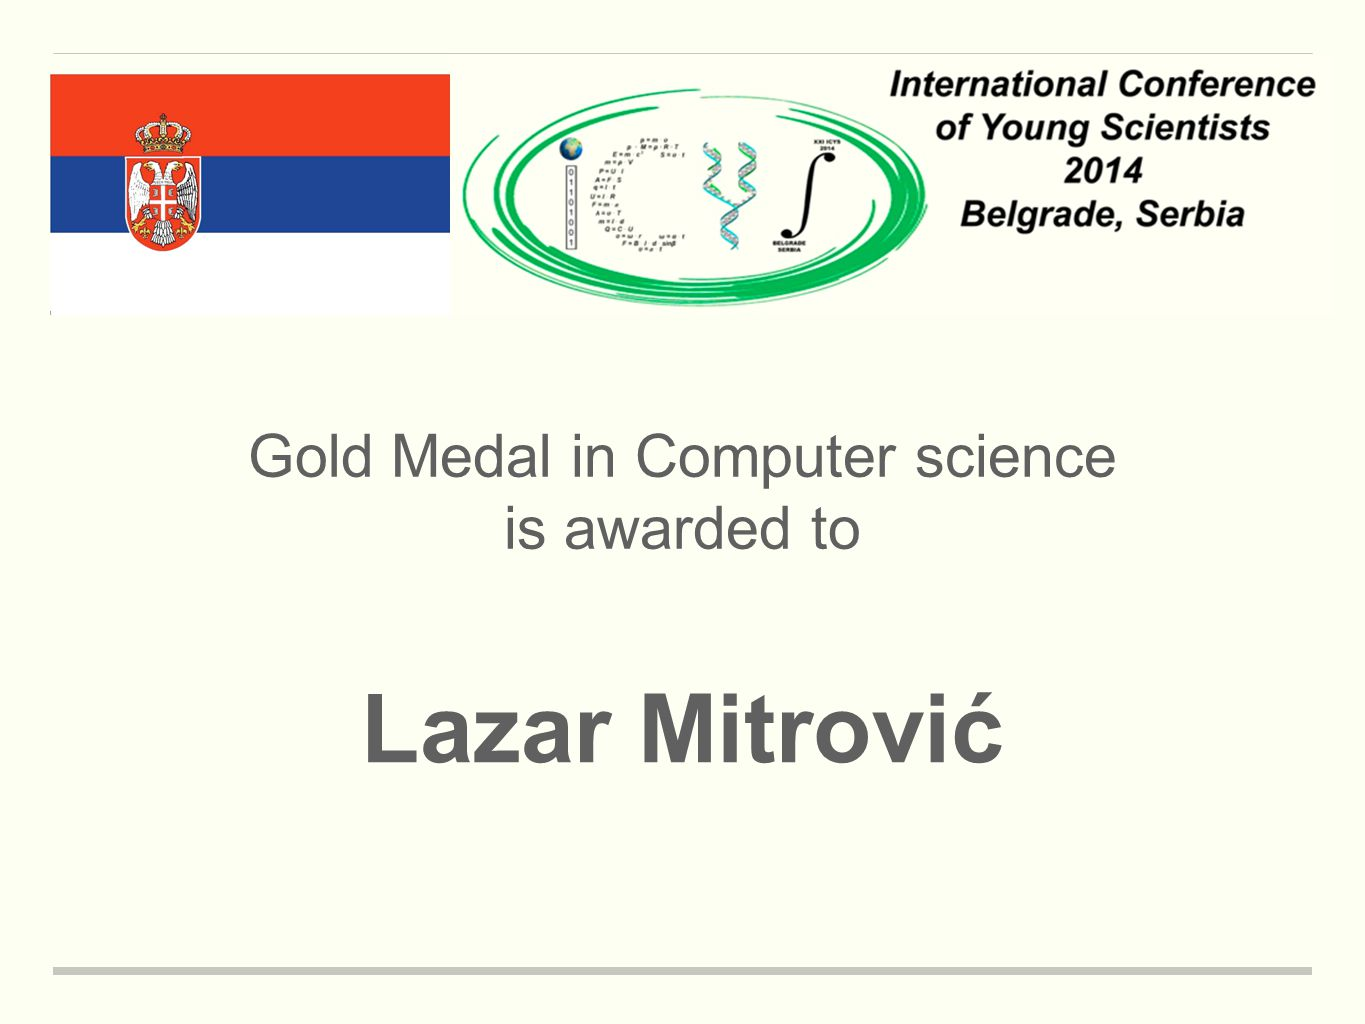 Gold Medal in Computer science is awarded to Lazar Mitrović